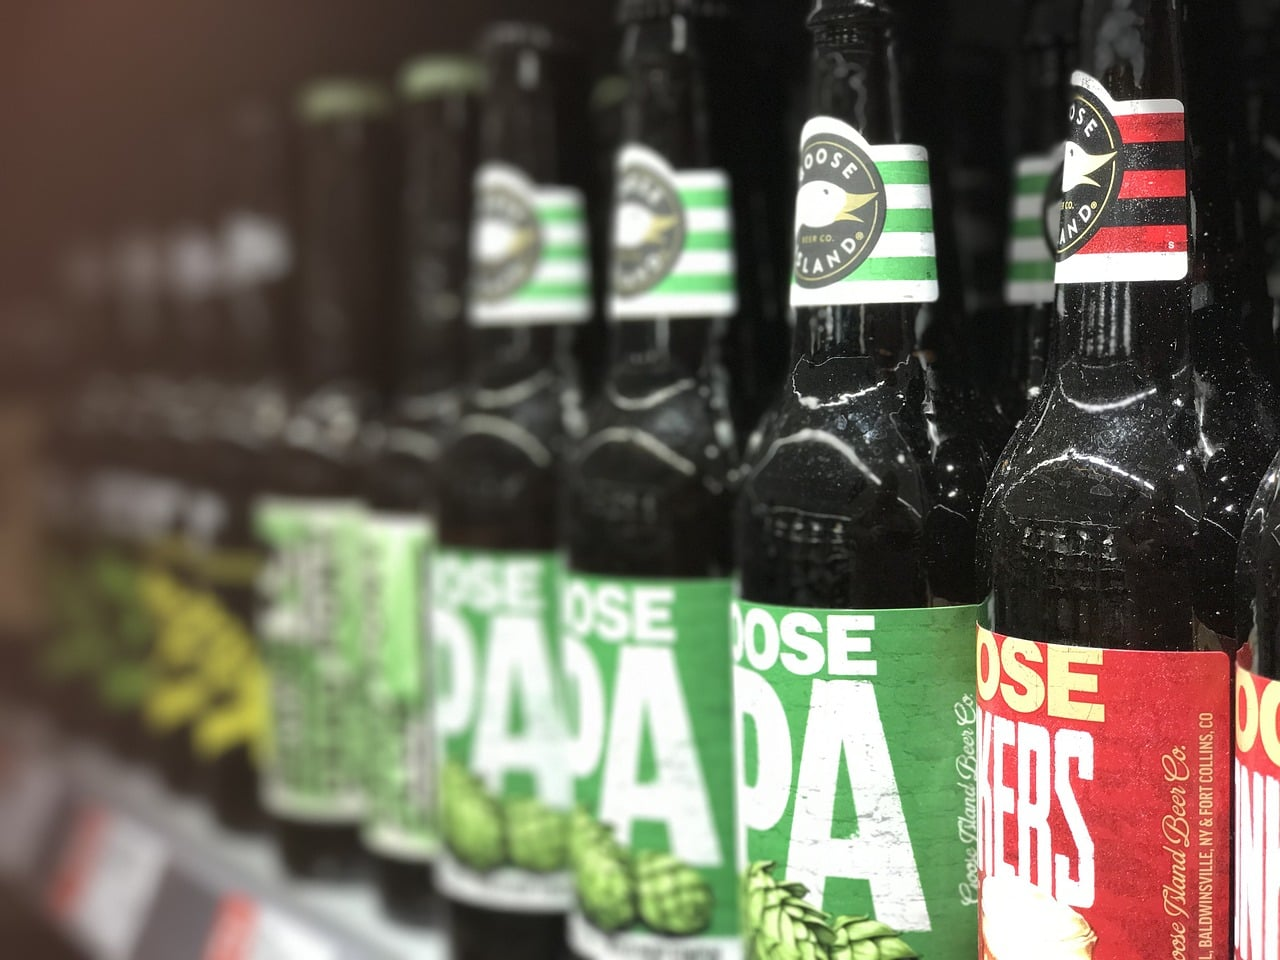 bottles of IPA beer